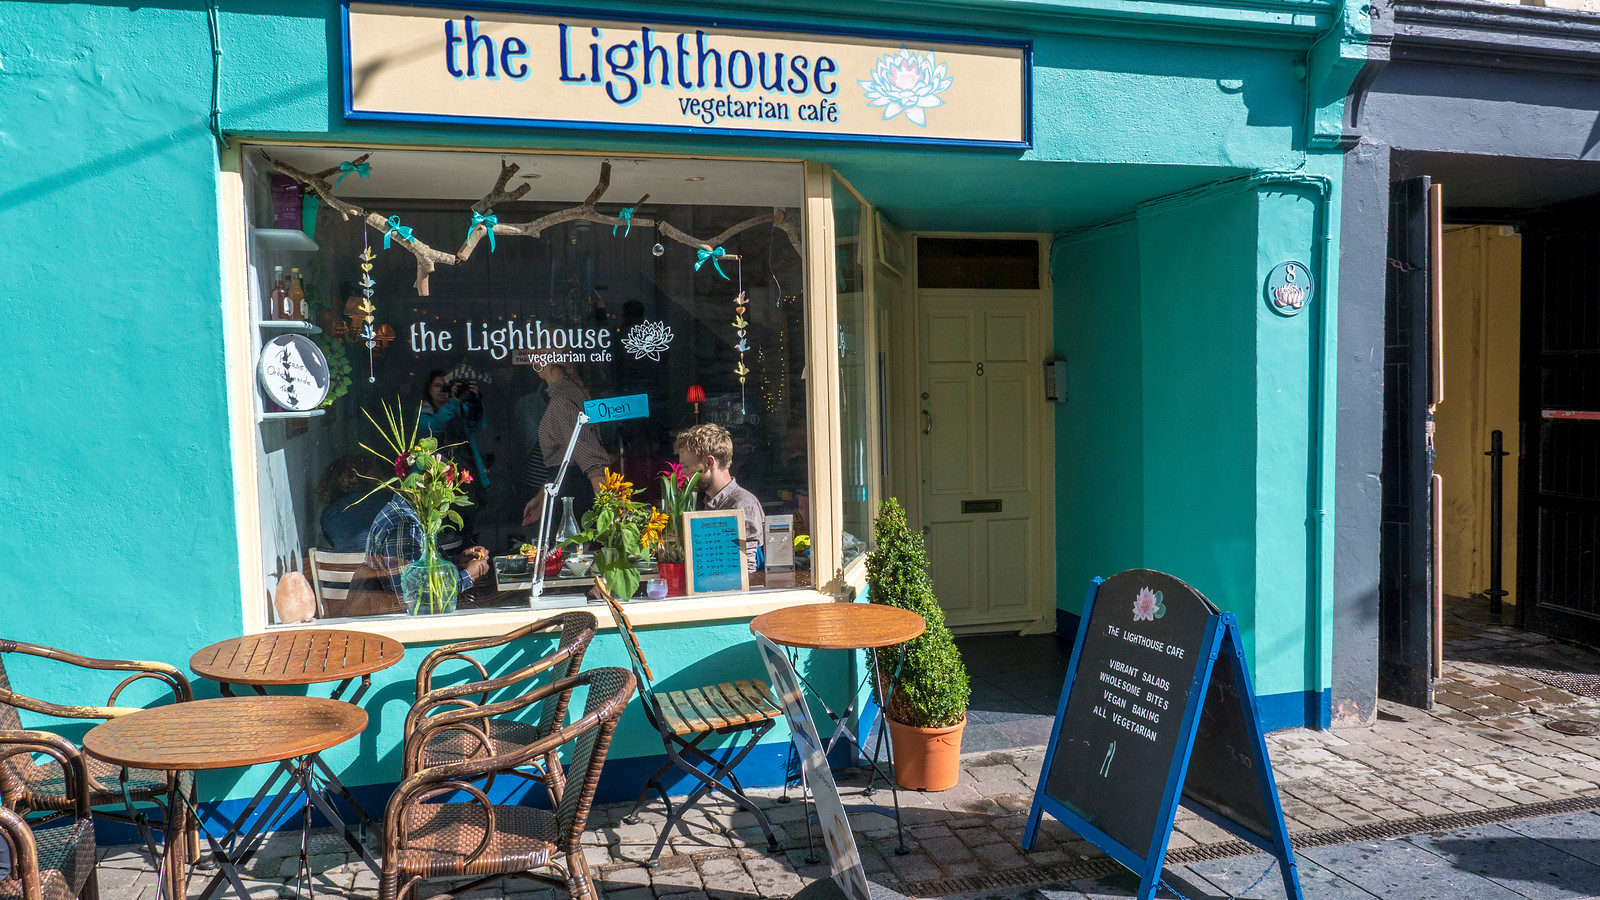 The Lighthouse Cafe, Galway, Ireland - Vegan Galway Restaurant and Dining Guide